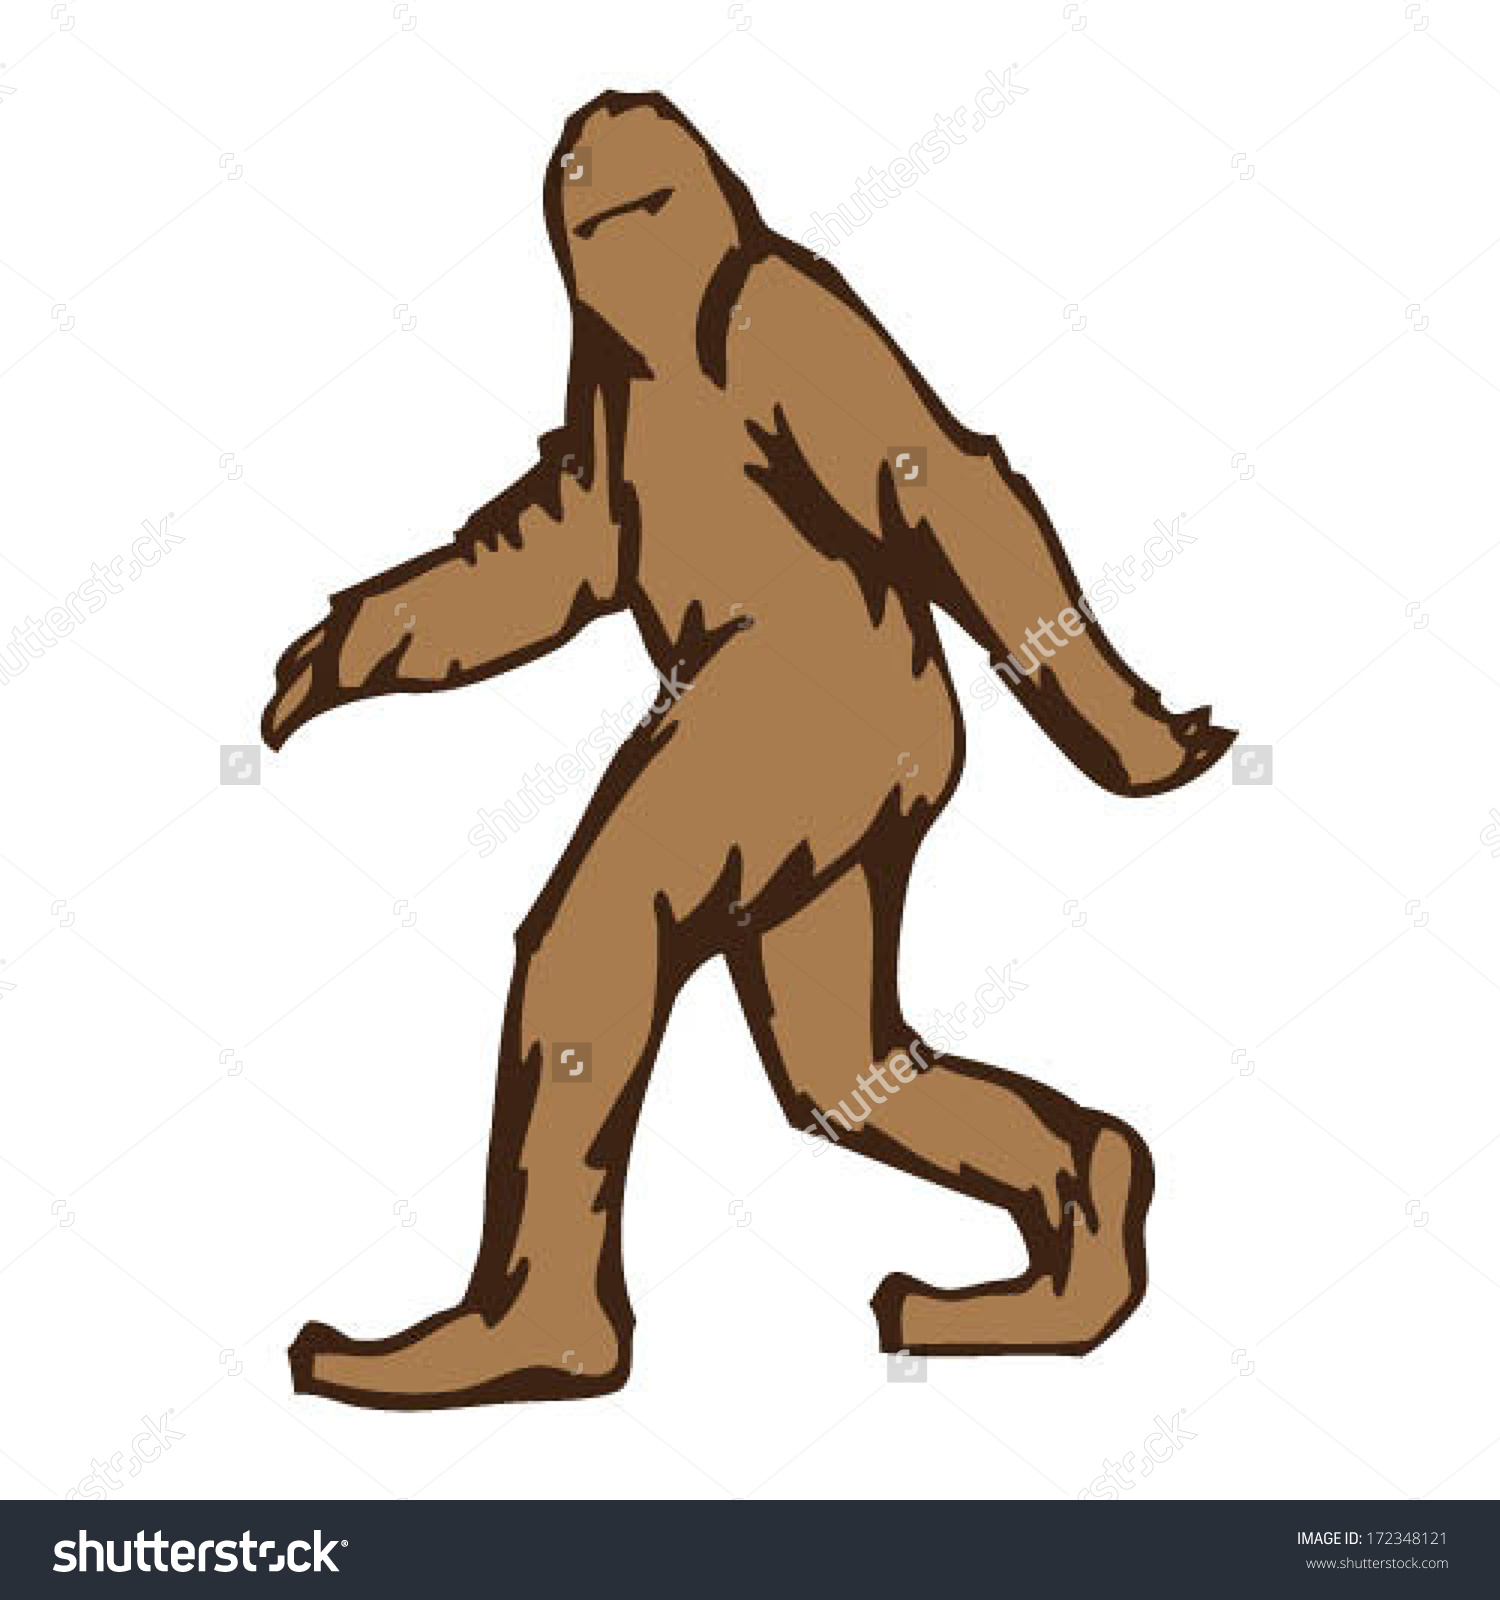 Sasquatch clipart #19, Download drawings